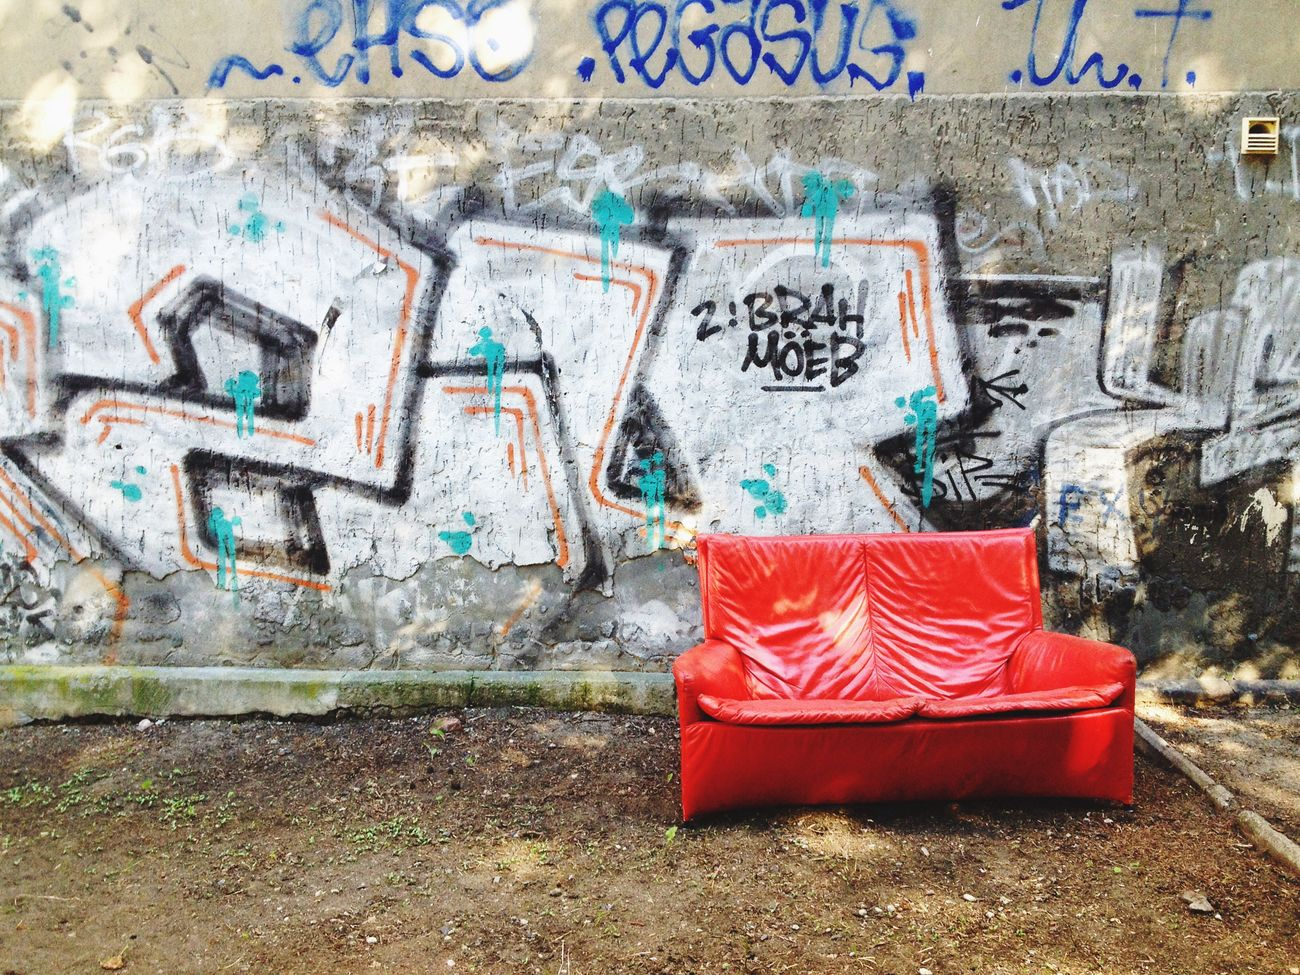 Berlin Sofa House Wall Graffiti Shabby Chic Red Typically Living Outdoors Summer